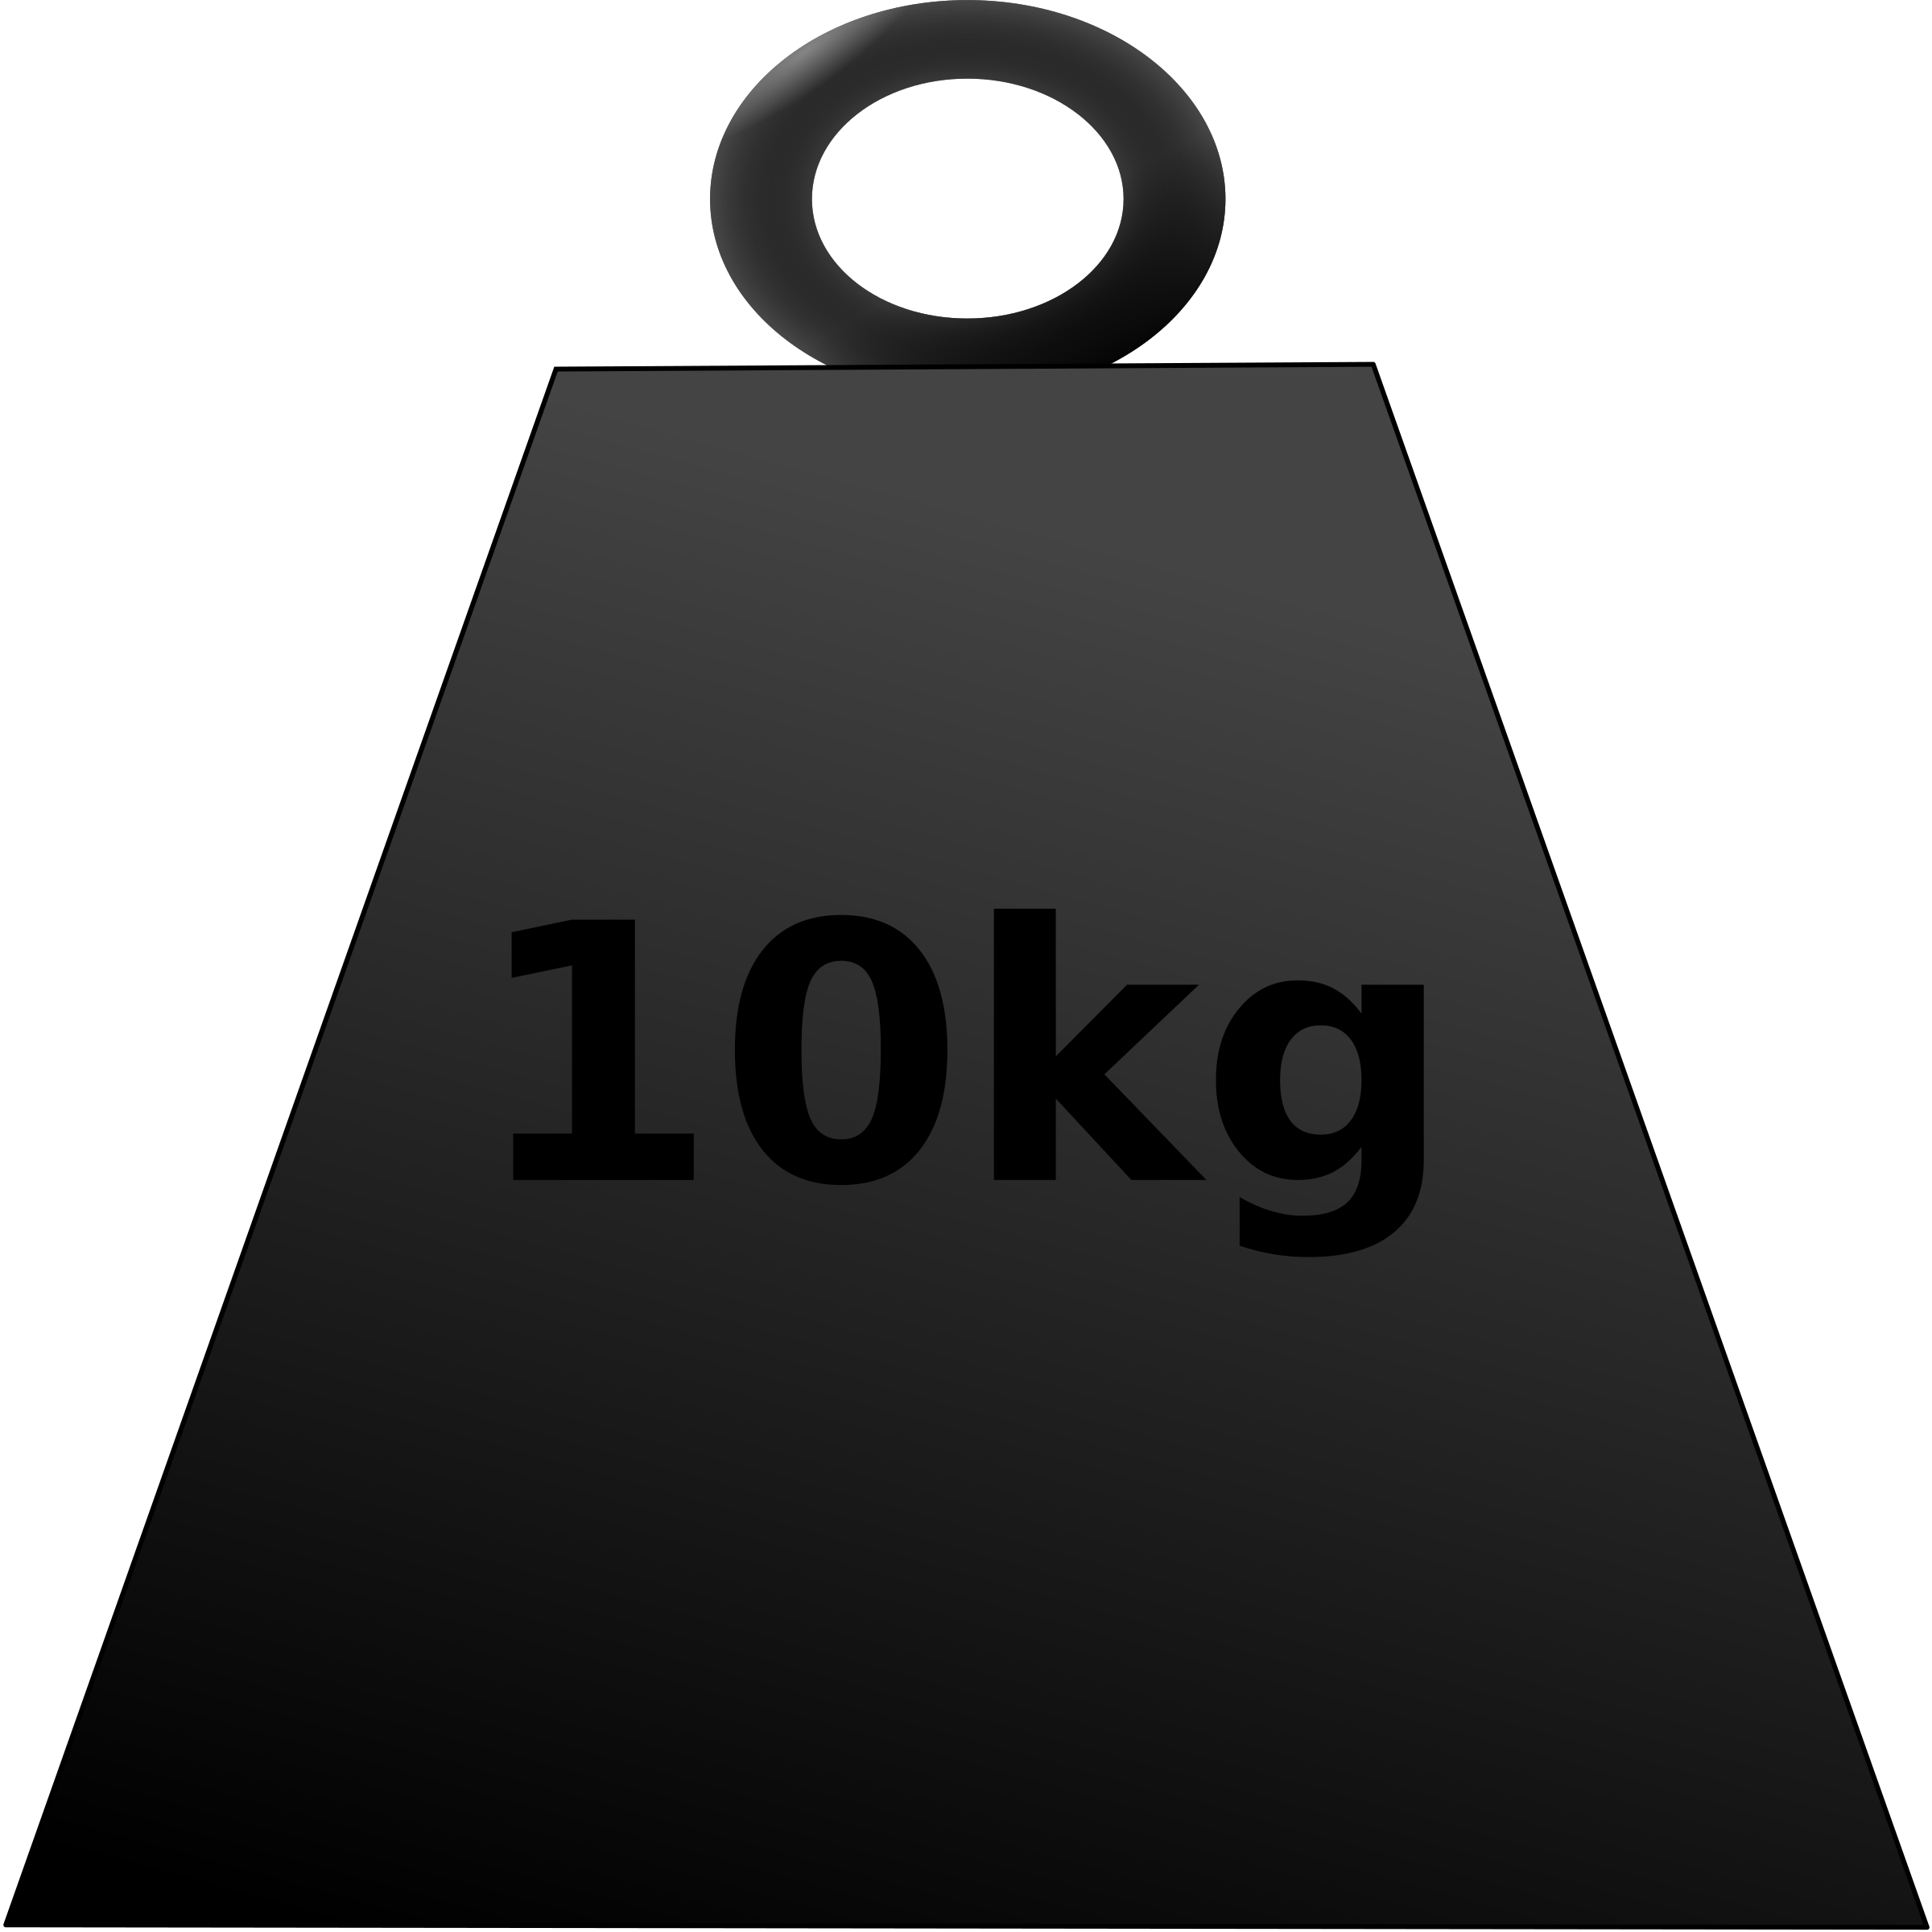 Kg big image png. Weight clipart svg